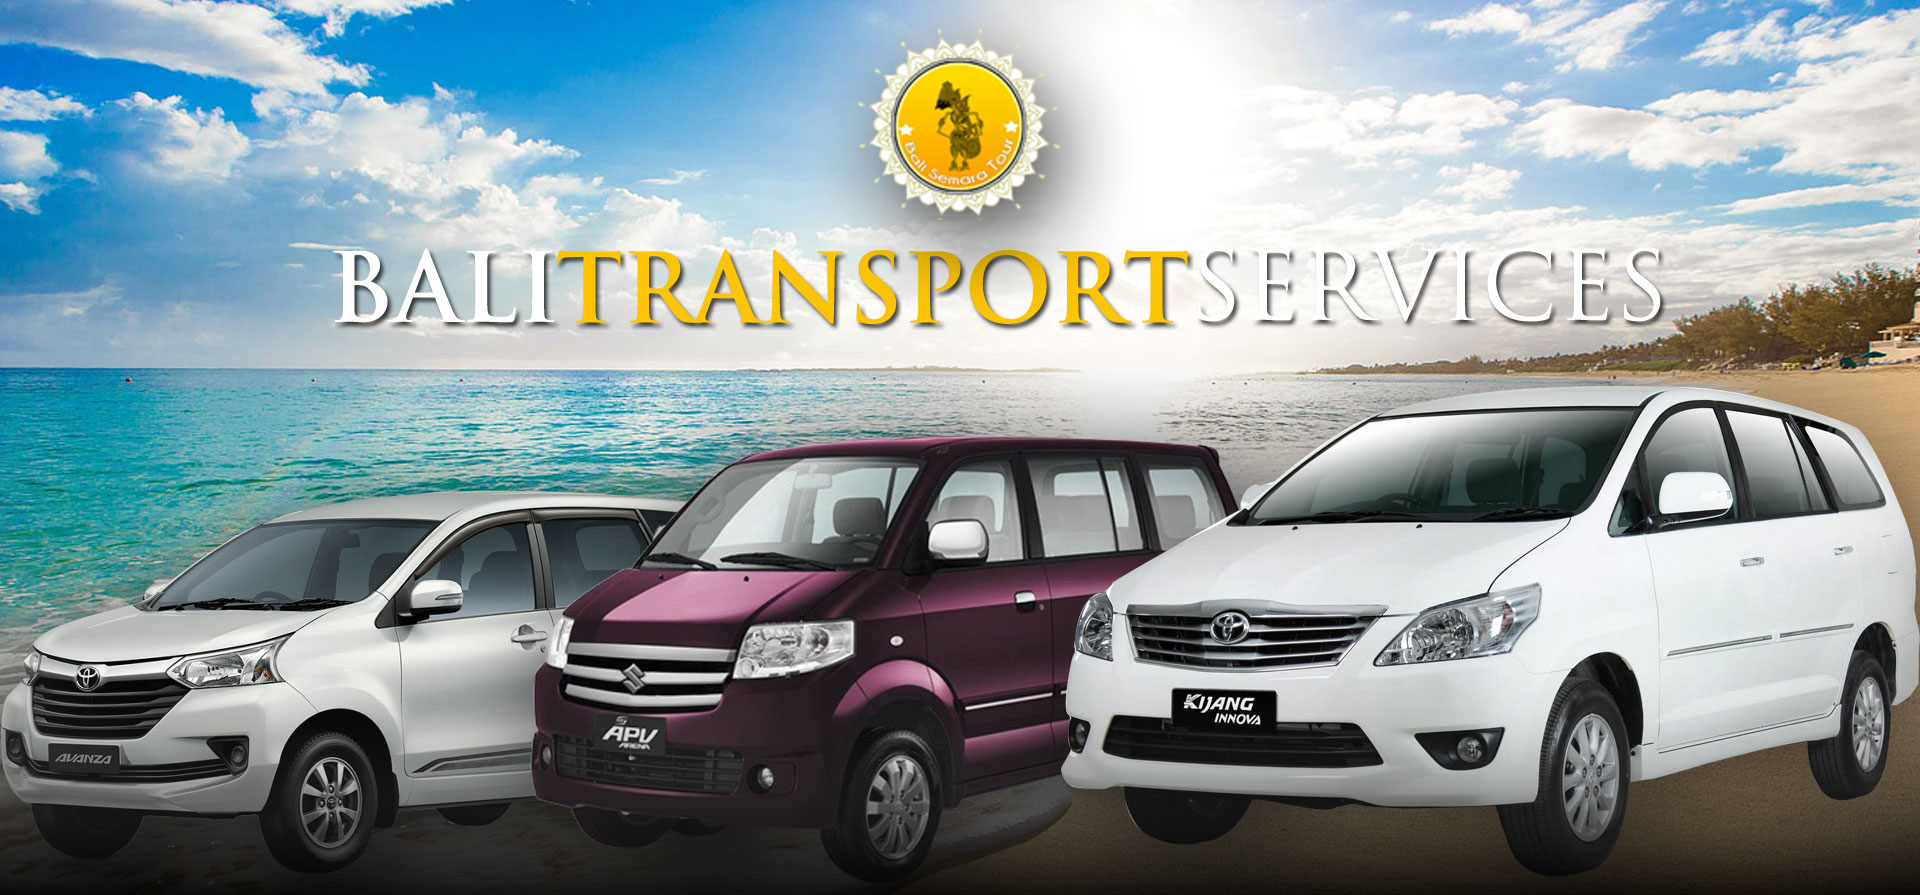 bali transport services